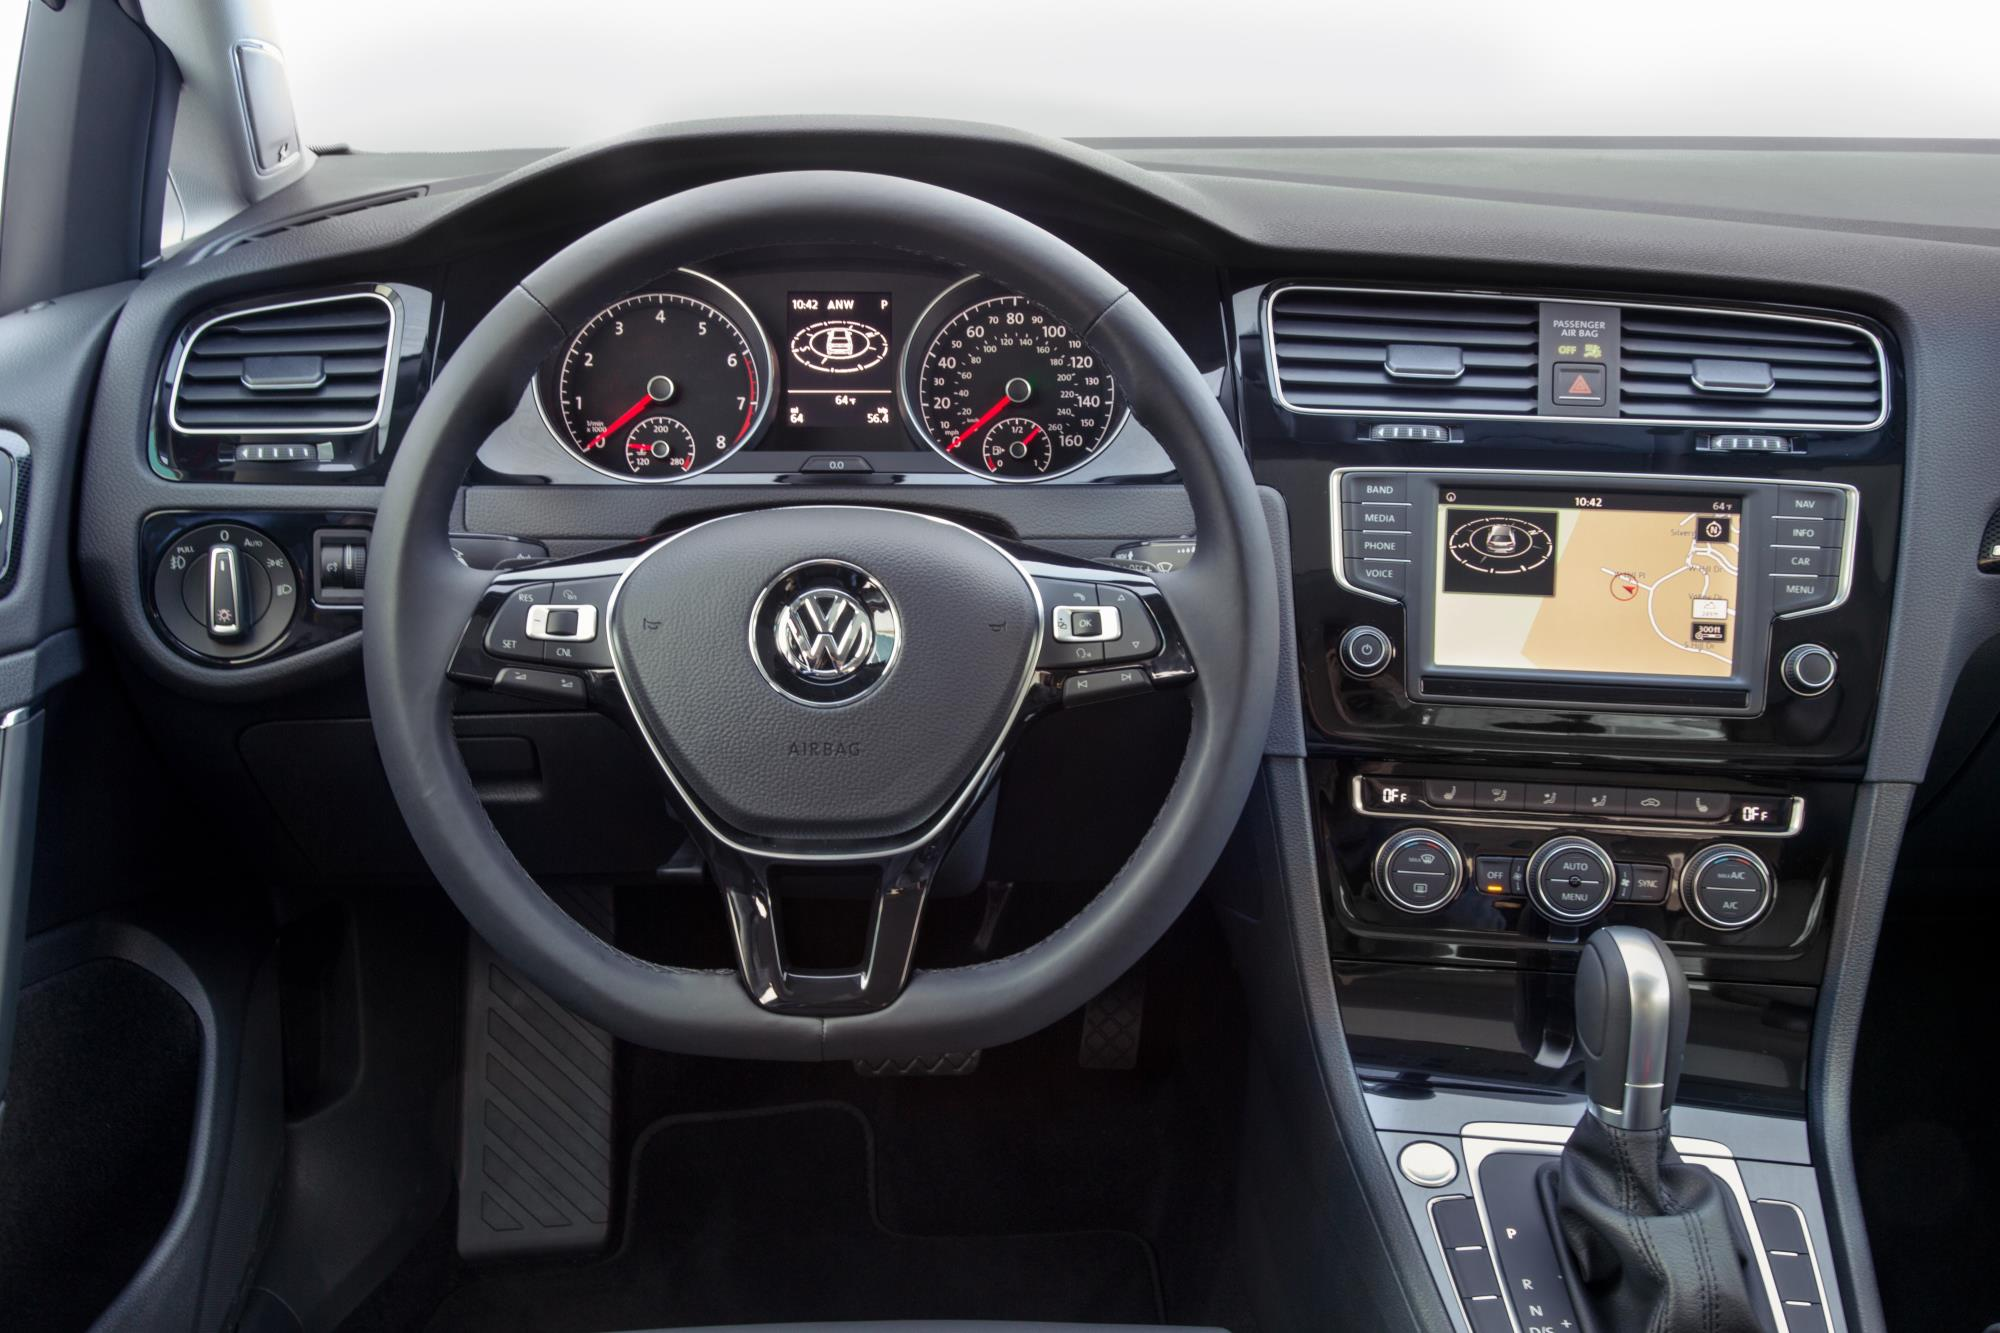 china jetta news recalls in getta while beetle you can million and rear still betta models suspension says over youd us volkswagen